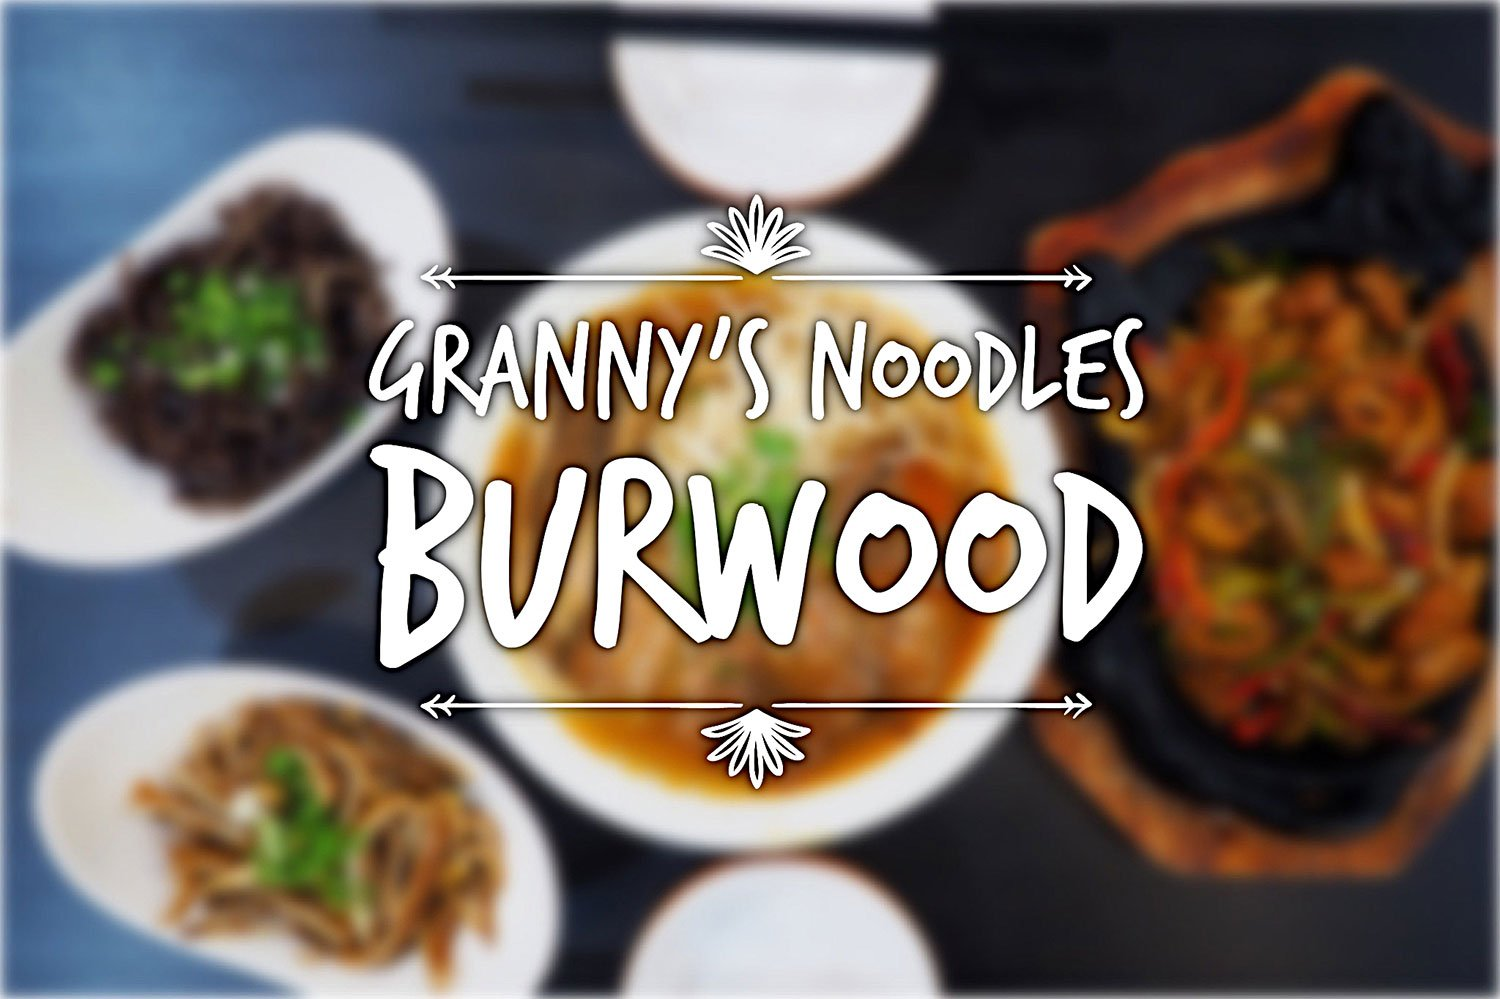 Sydney Food Blog Review of Granny's Noodles, Burwood